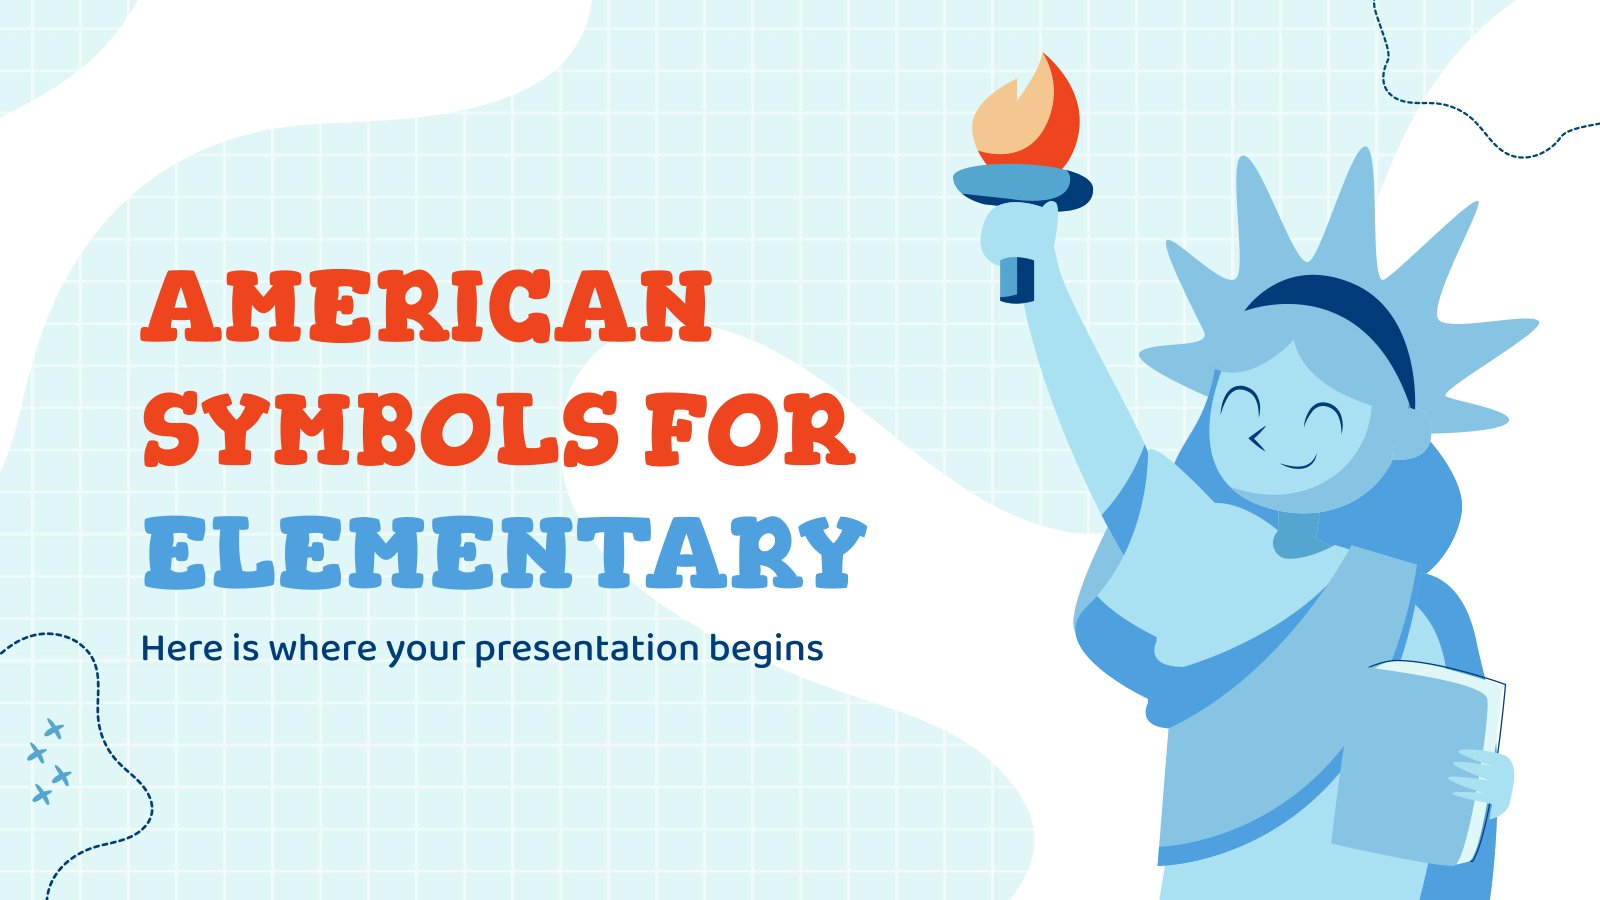 American Symbols for Elementary presentation template